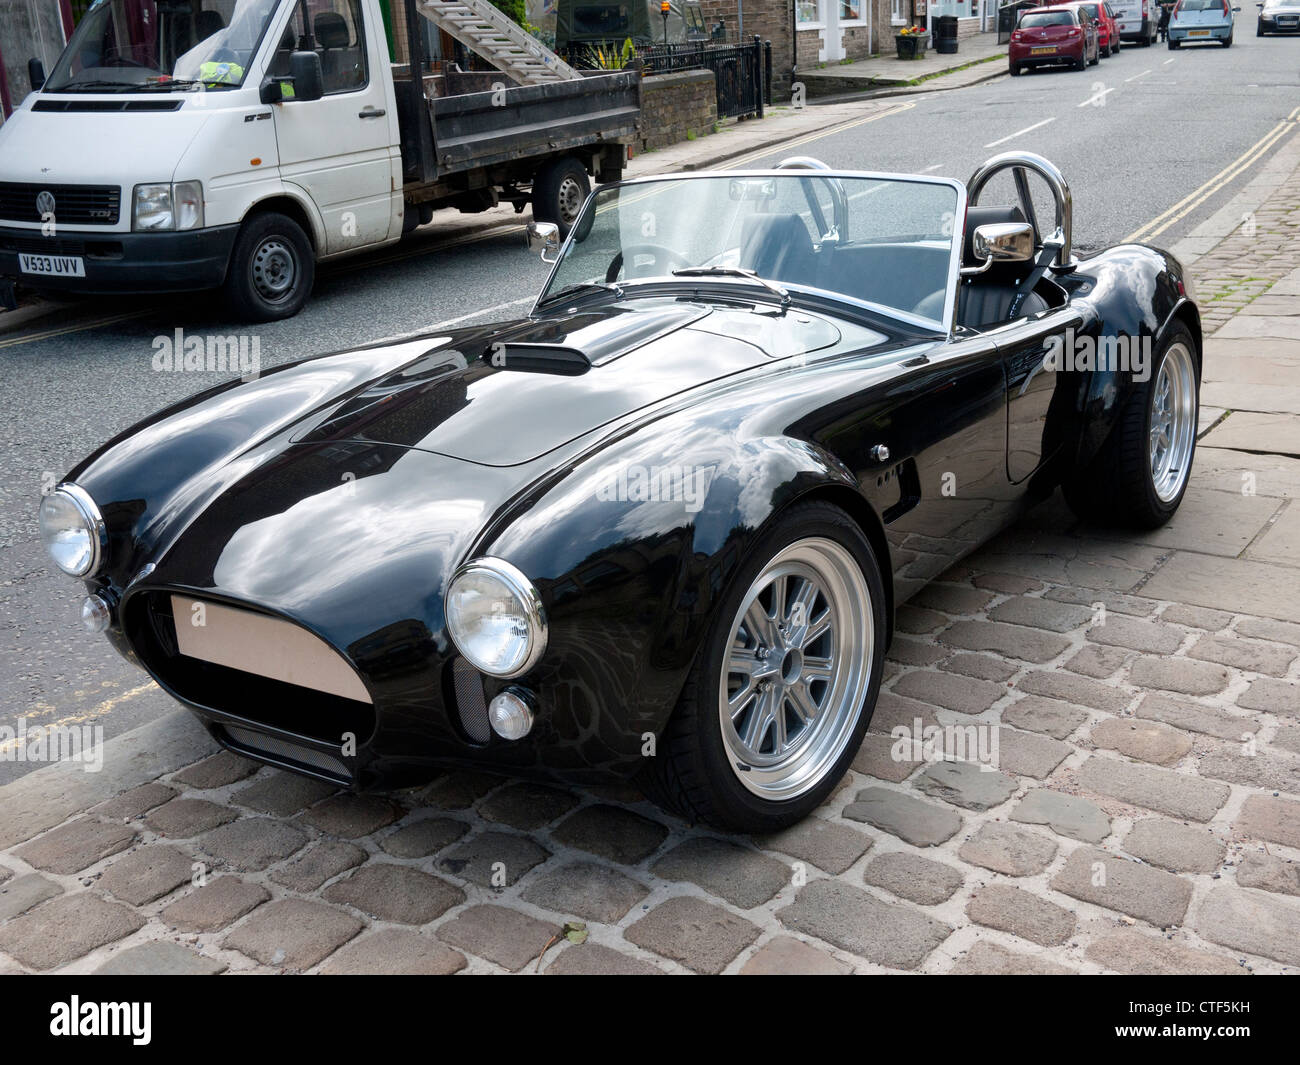 Ac Cobra Replica Kit Car Uk Stock Photo Royalty Free